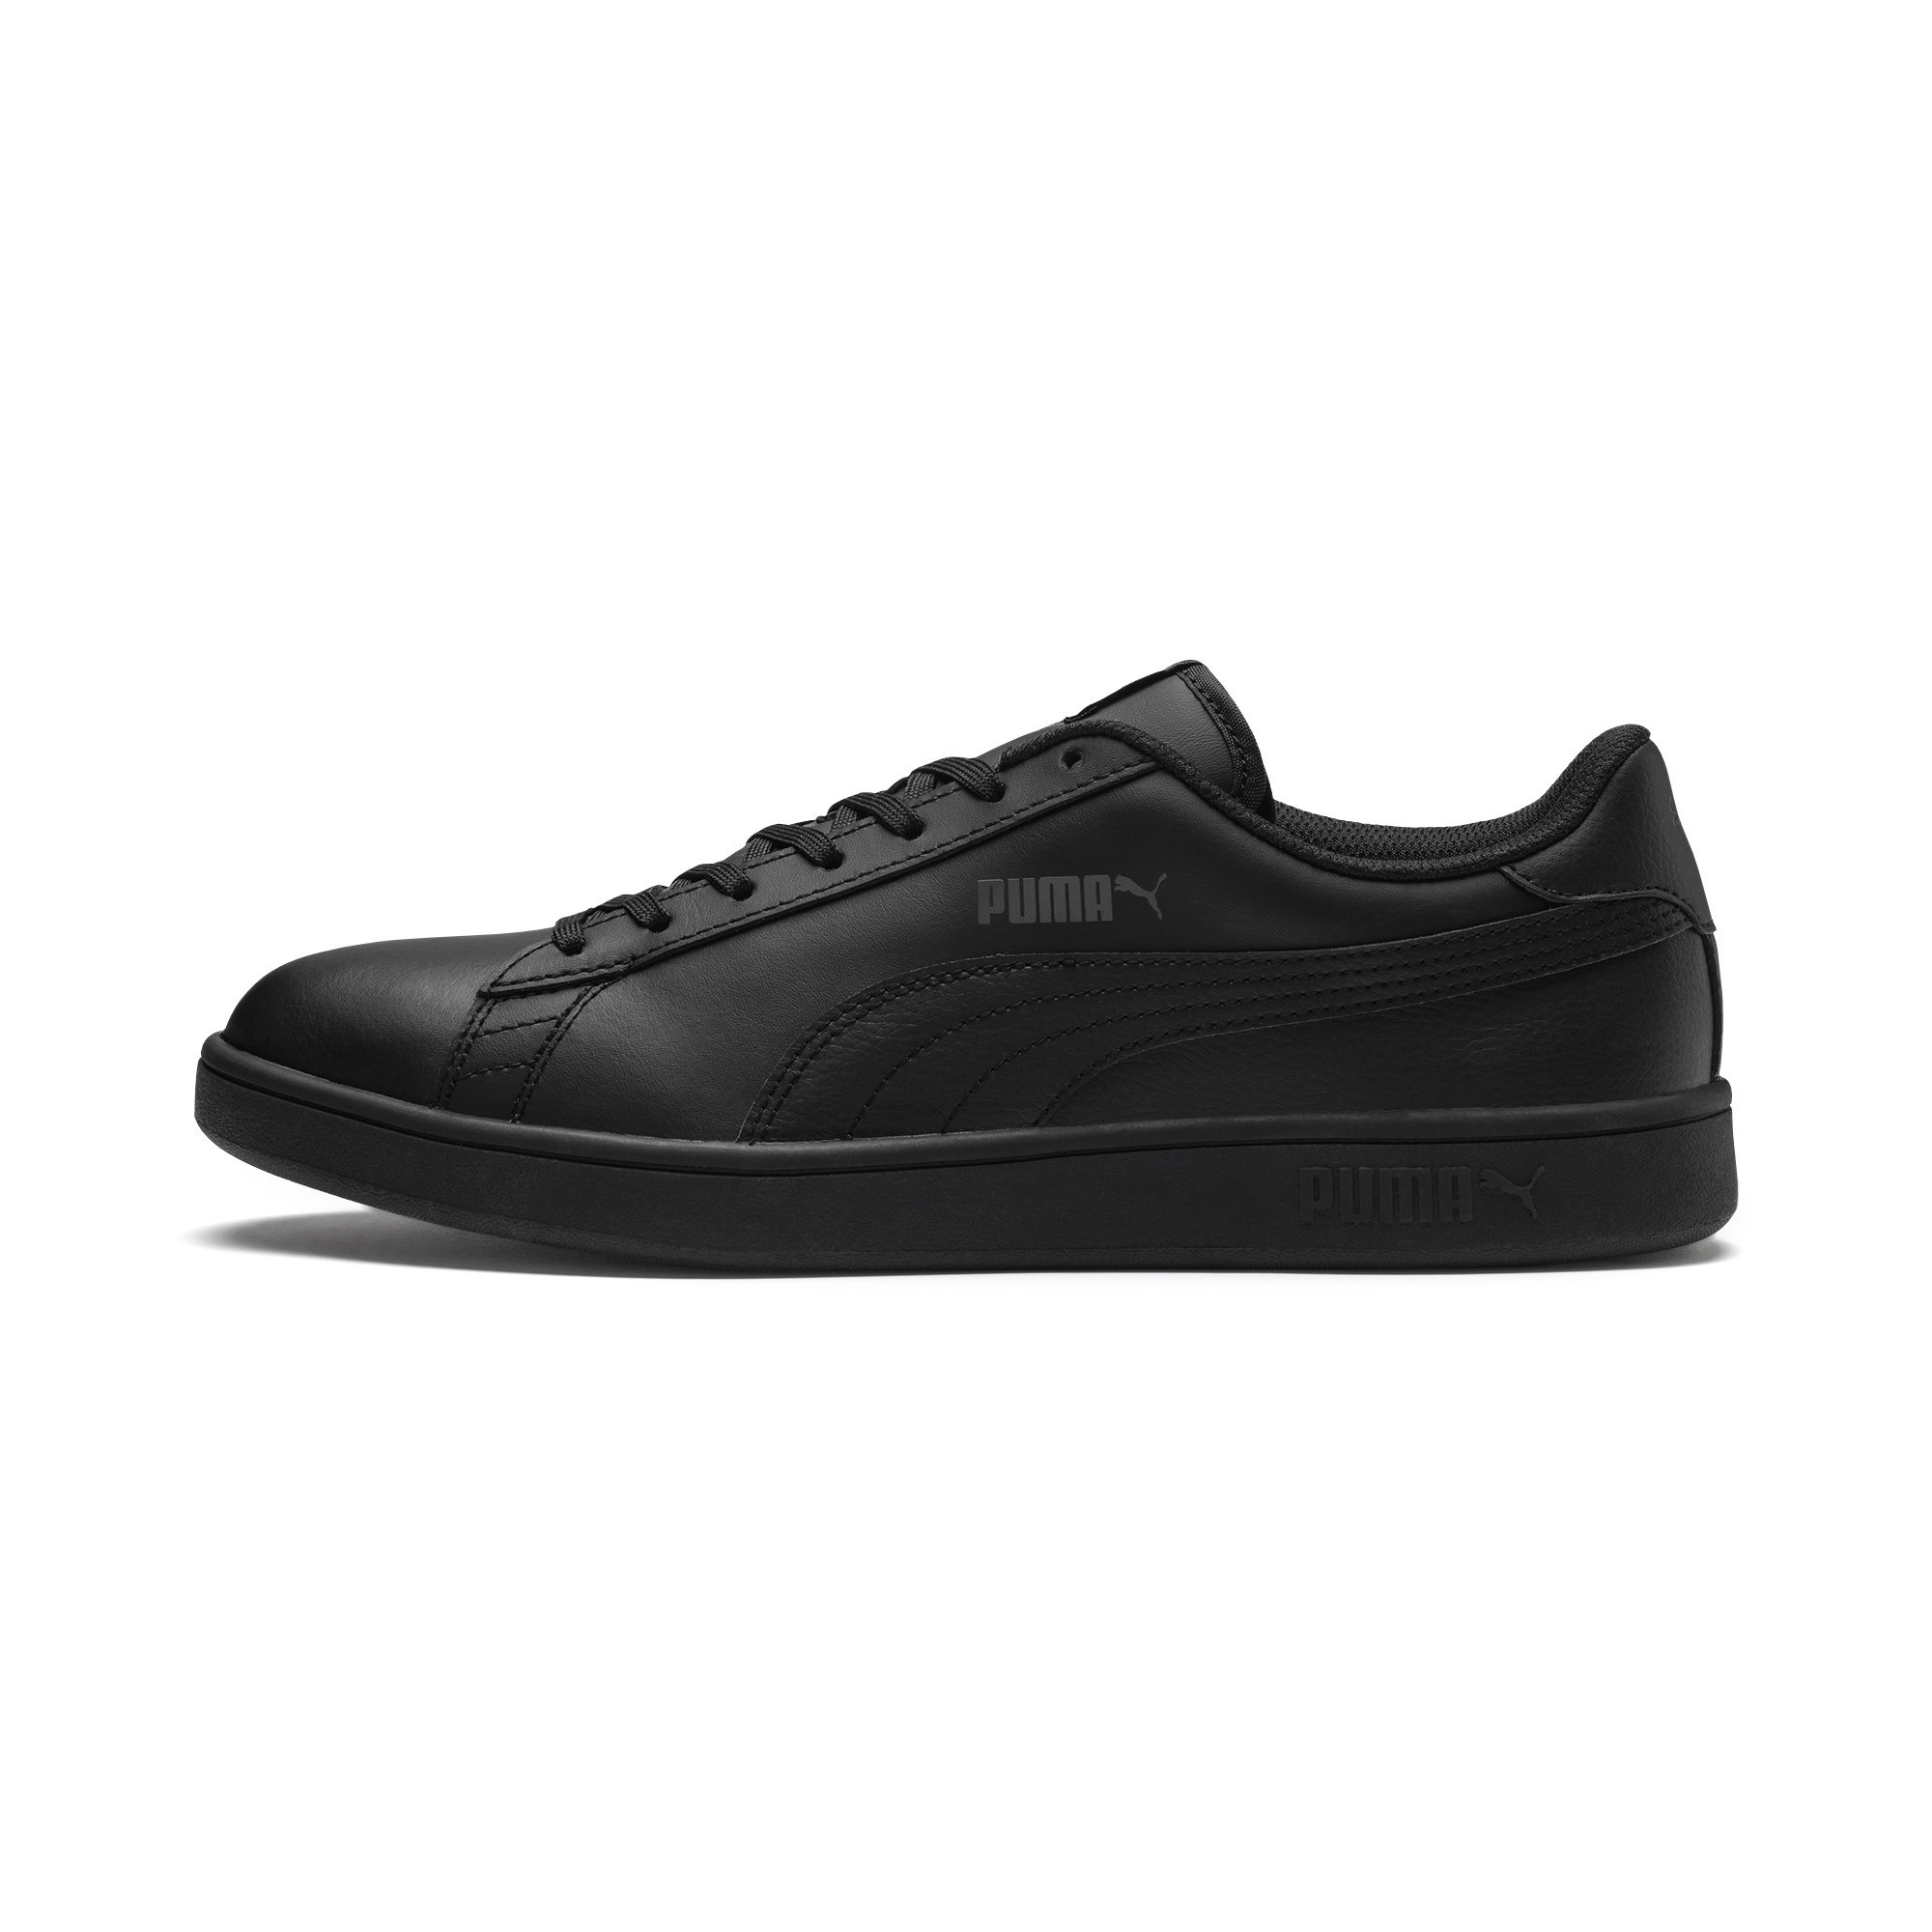 PUMA-PUMA-Smash-v2-Men-039-s-Sneakers-Men-Shoe-Basics thumbnail 23